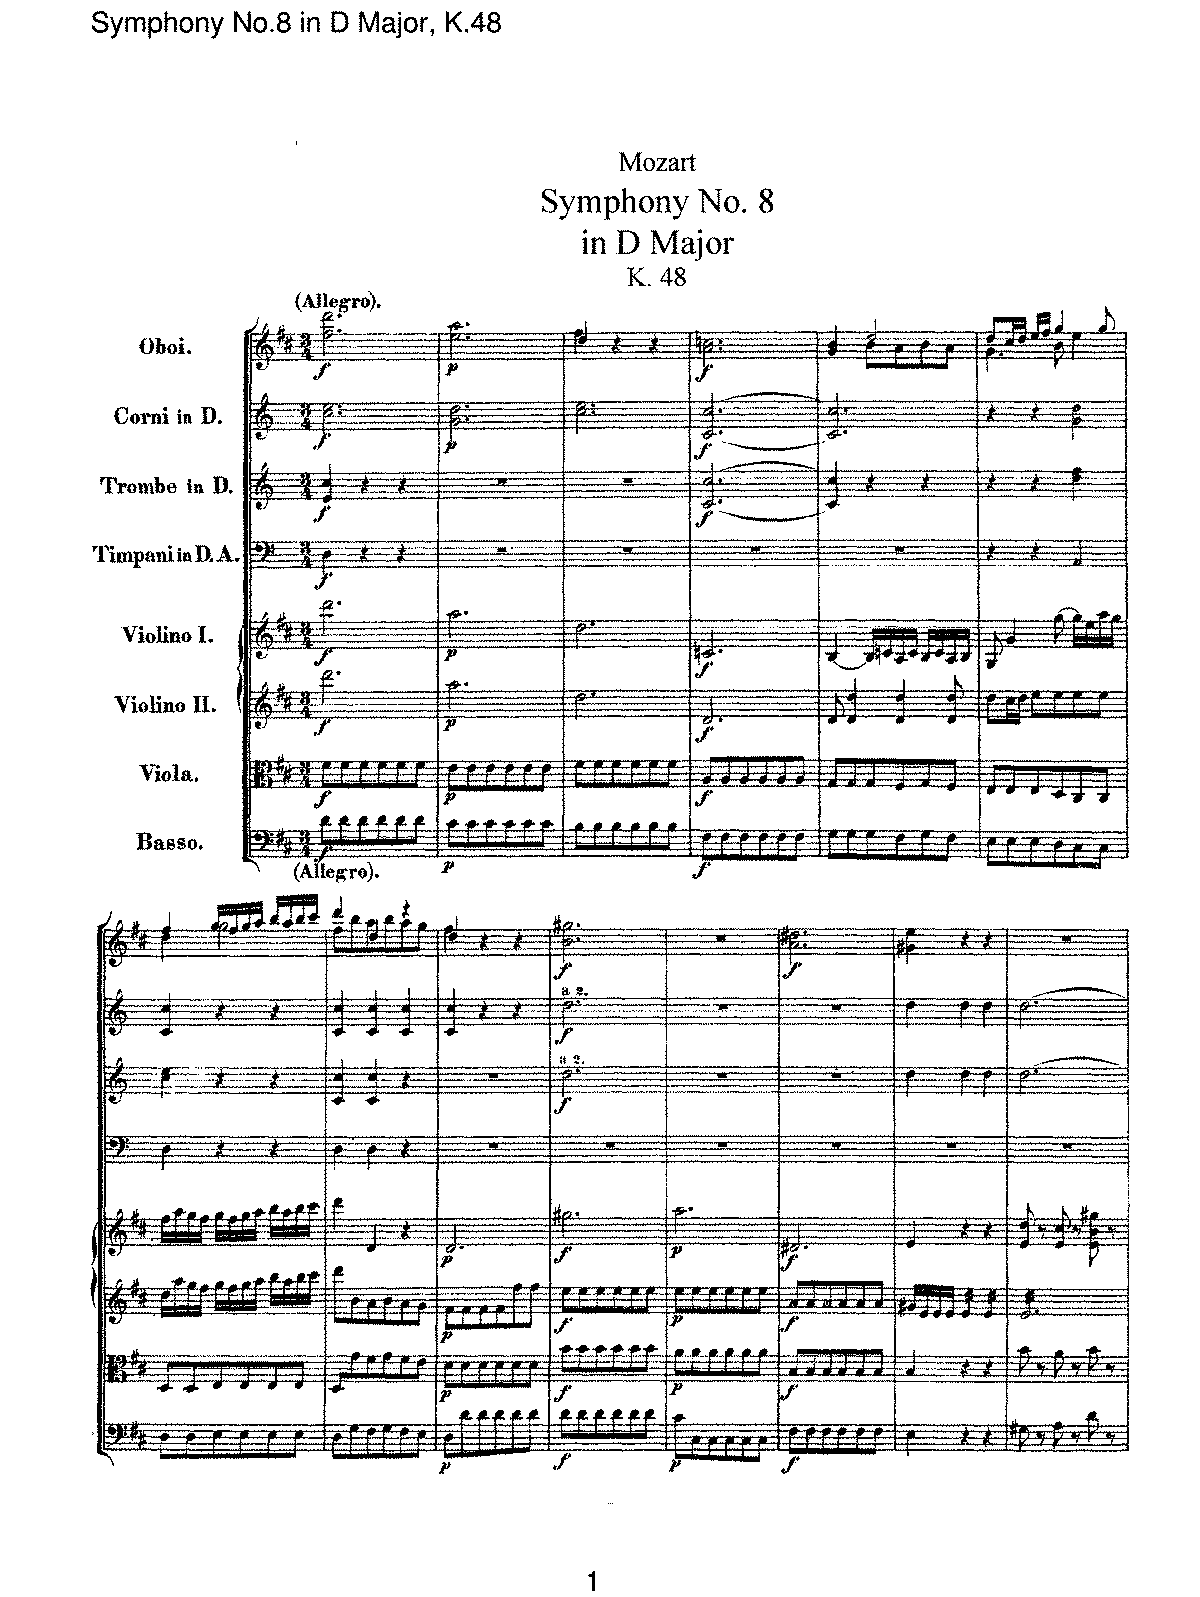 Mozart - Symphony No 08 in D Major, K48.pdf